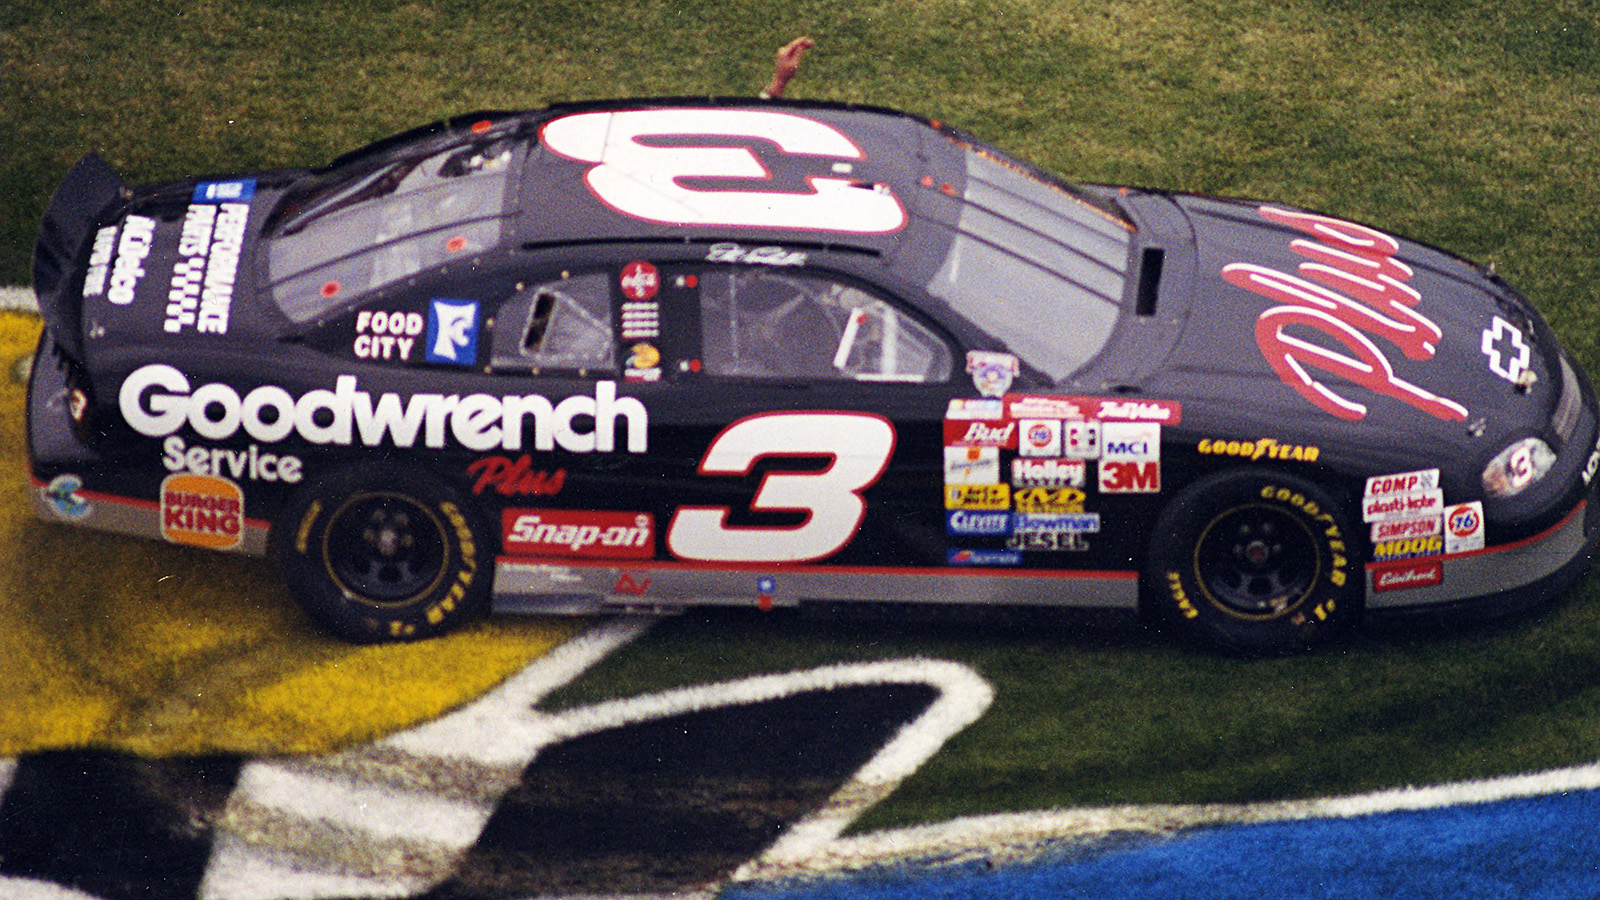 DAYTONA BEACH, FL - FEBRUARY 15, 1998:  Dale Earnhardt celebrates after winning the Daytona 500.  (Photo by ISC Archives via Getty Images)